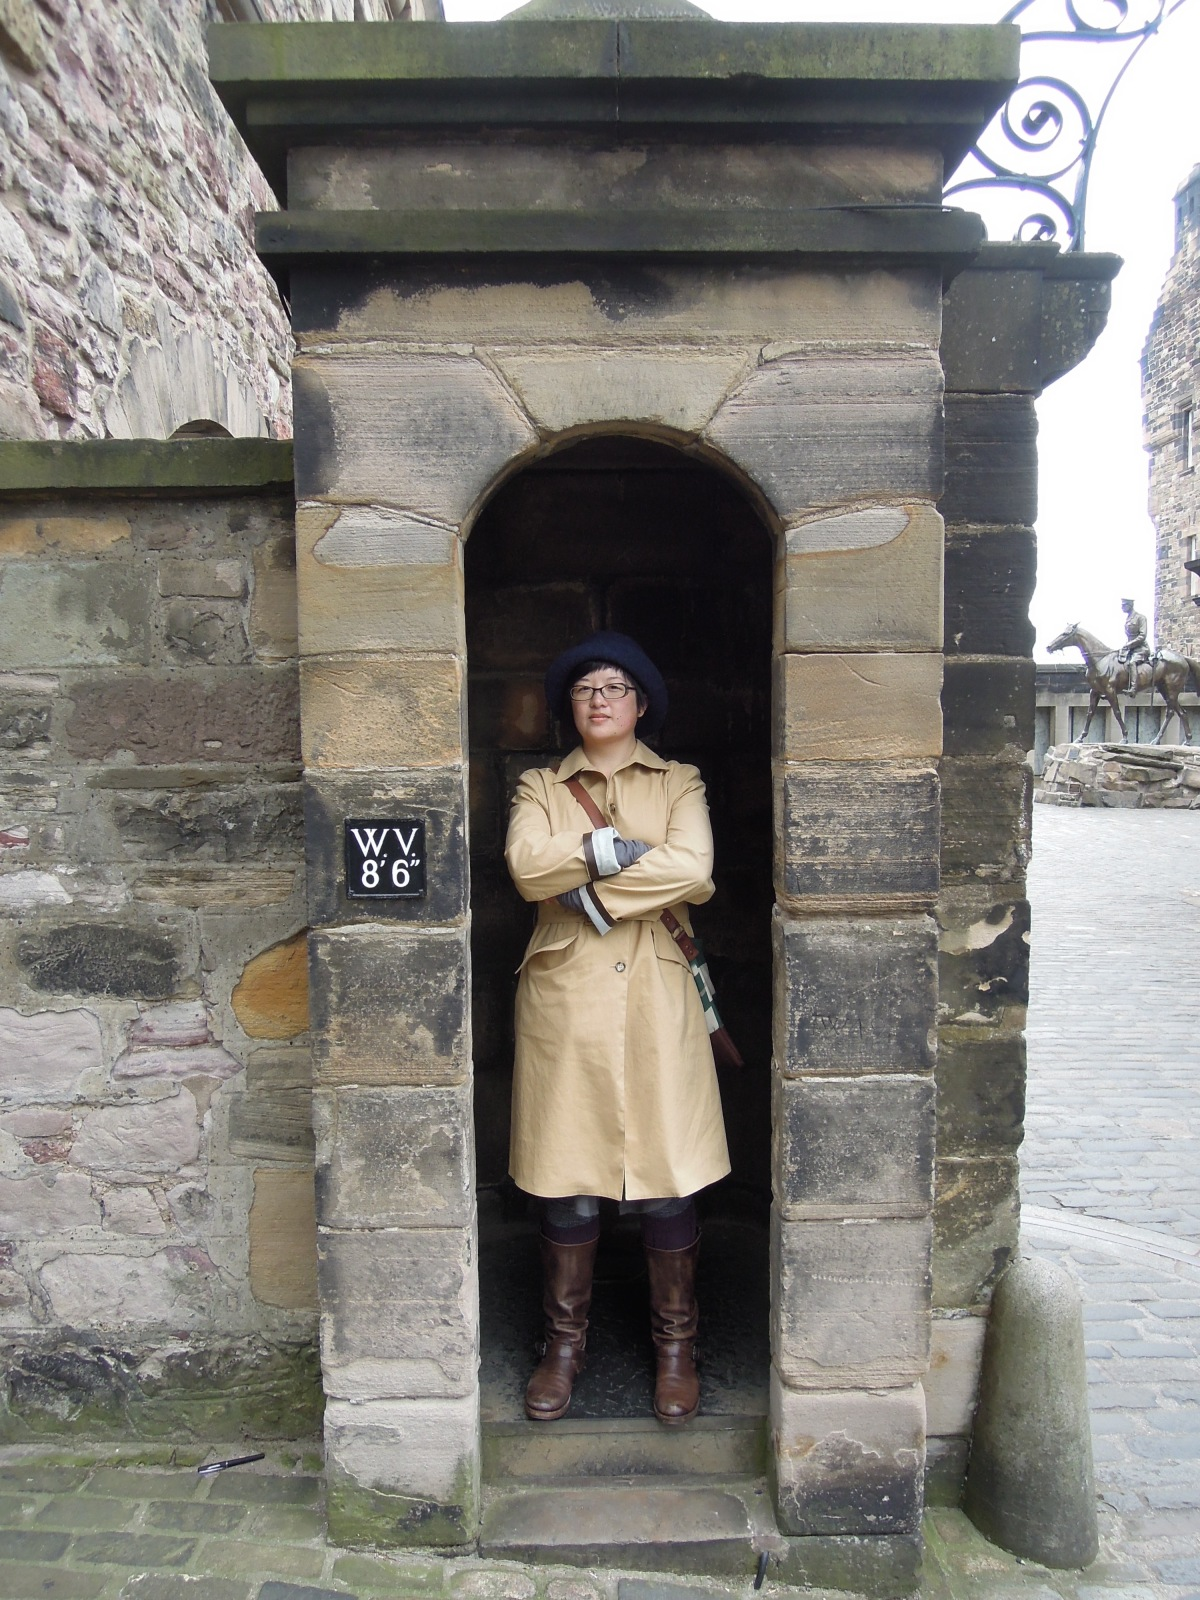 Lisa standing with arms crossed in a guard booth at Edinburgh Castle